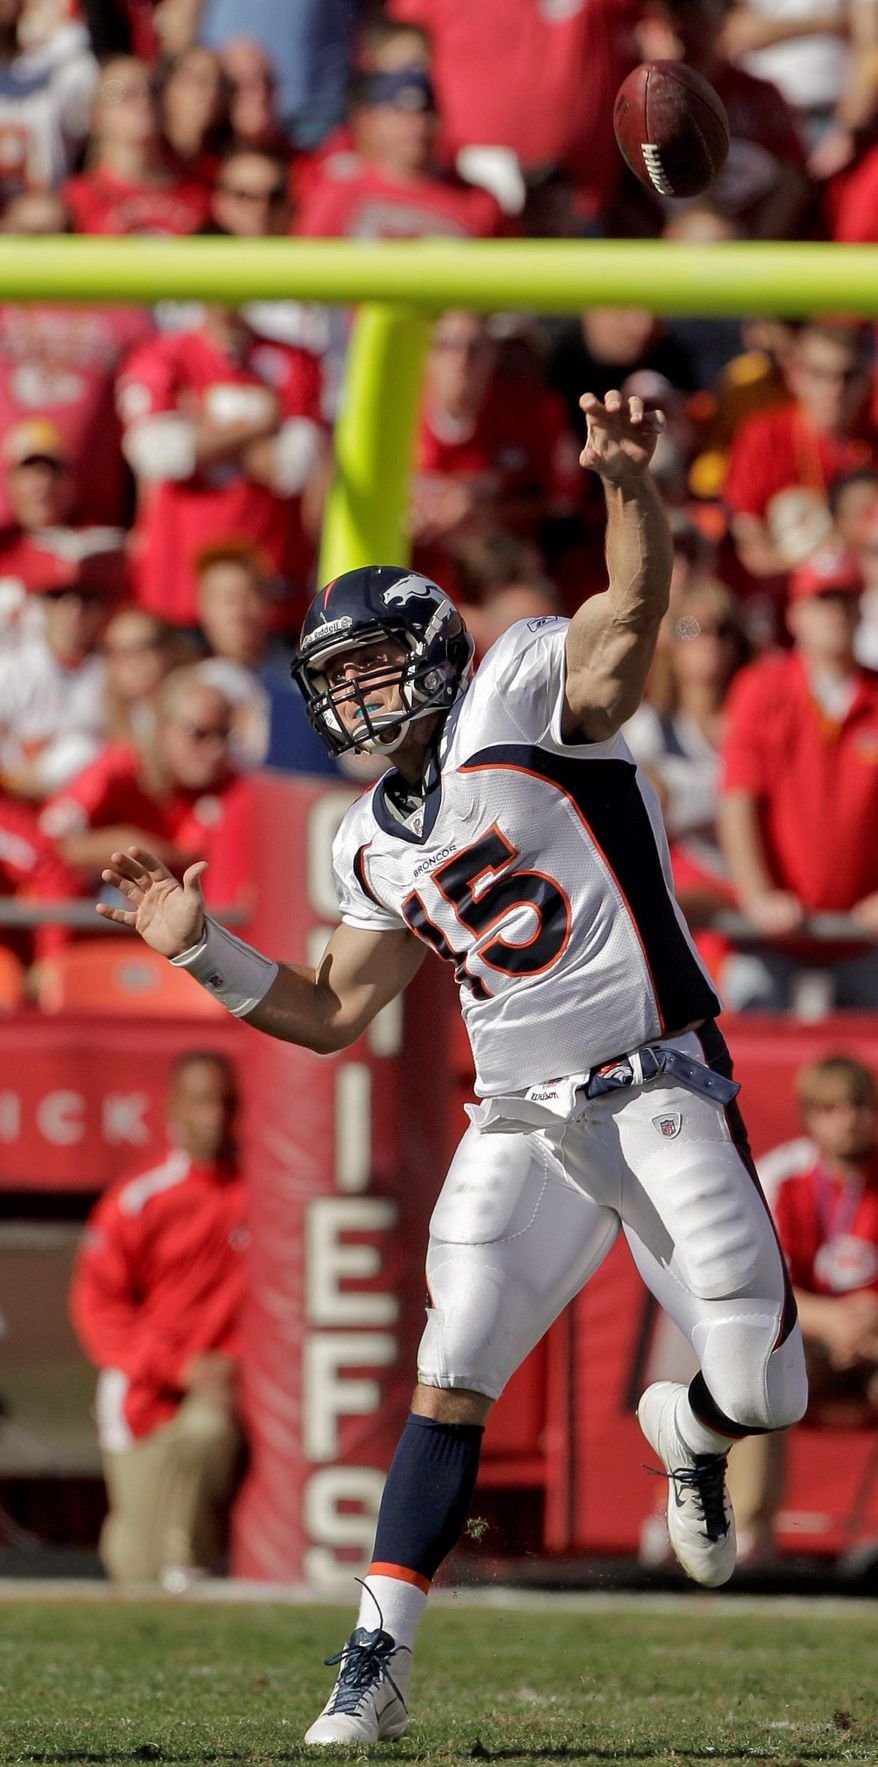 Denver Broncos quarterback Tim Tebow (15) passes the ball during the first half of an NFL football game against the Kansas City Chiefs, Sunday, Nov. 13, 2011, in Kansas City, Mo. (AP Photo/Charlie Riedel)